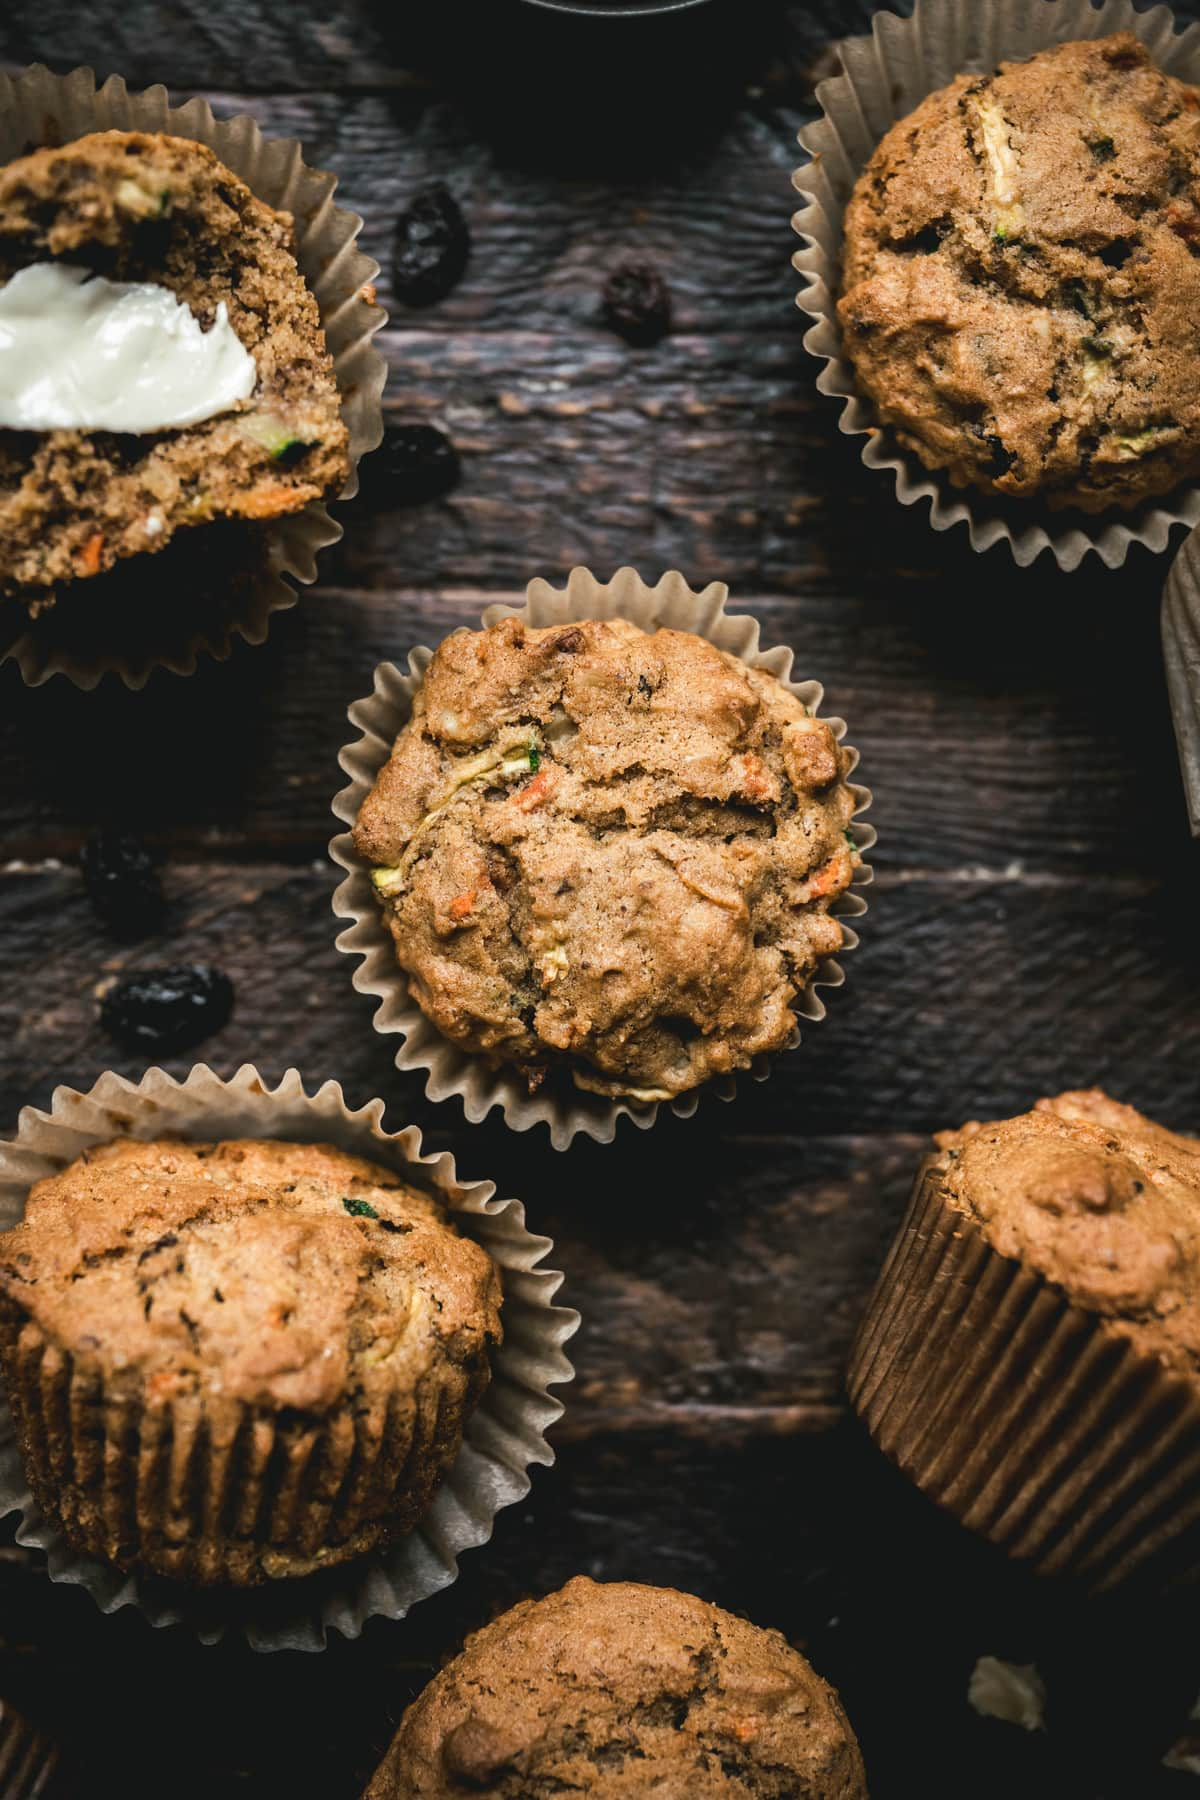 overhead of several gluten free vegan carrot zucchini muffins in liners on a dark wood background